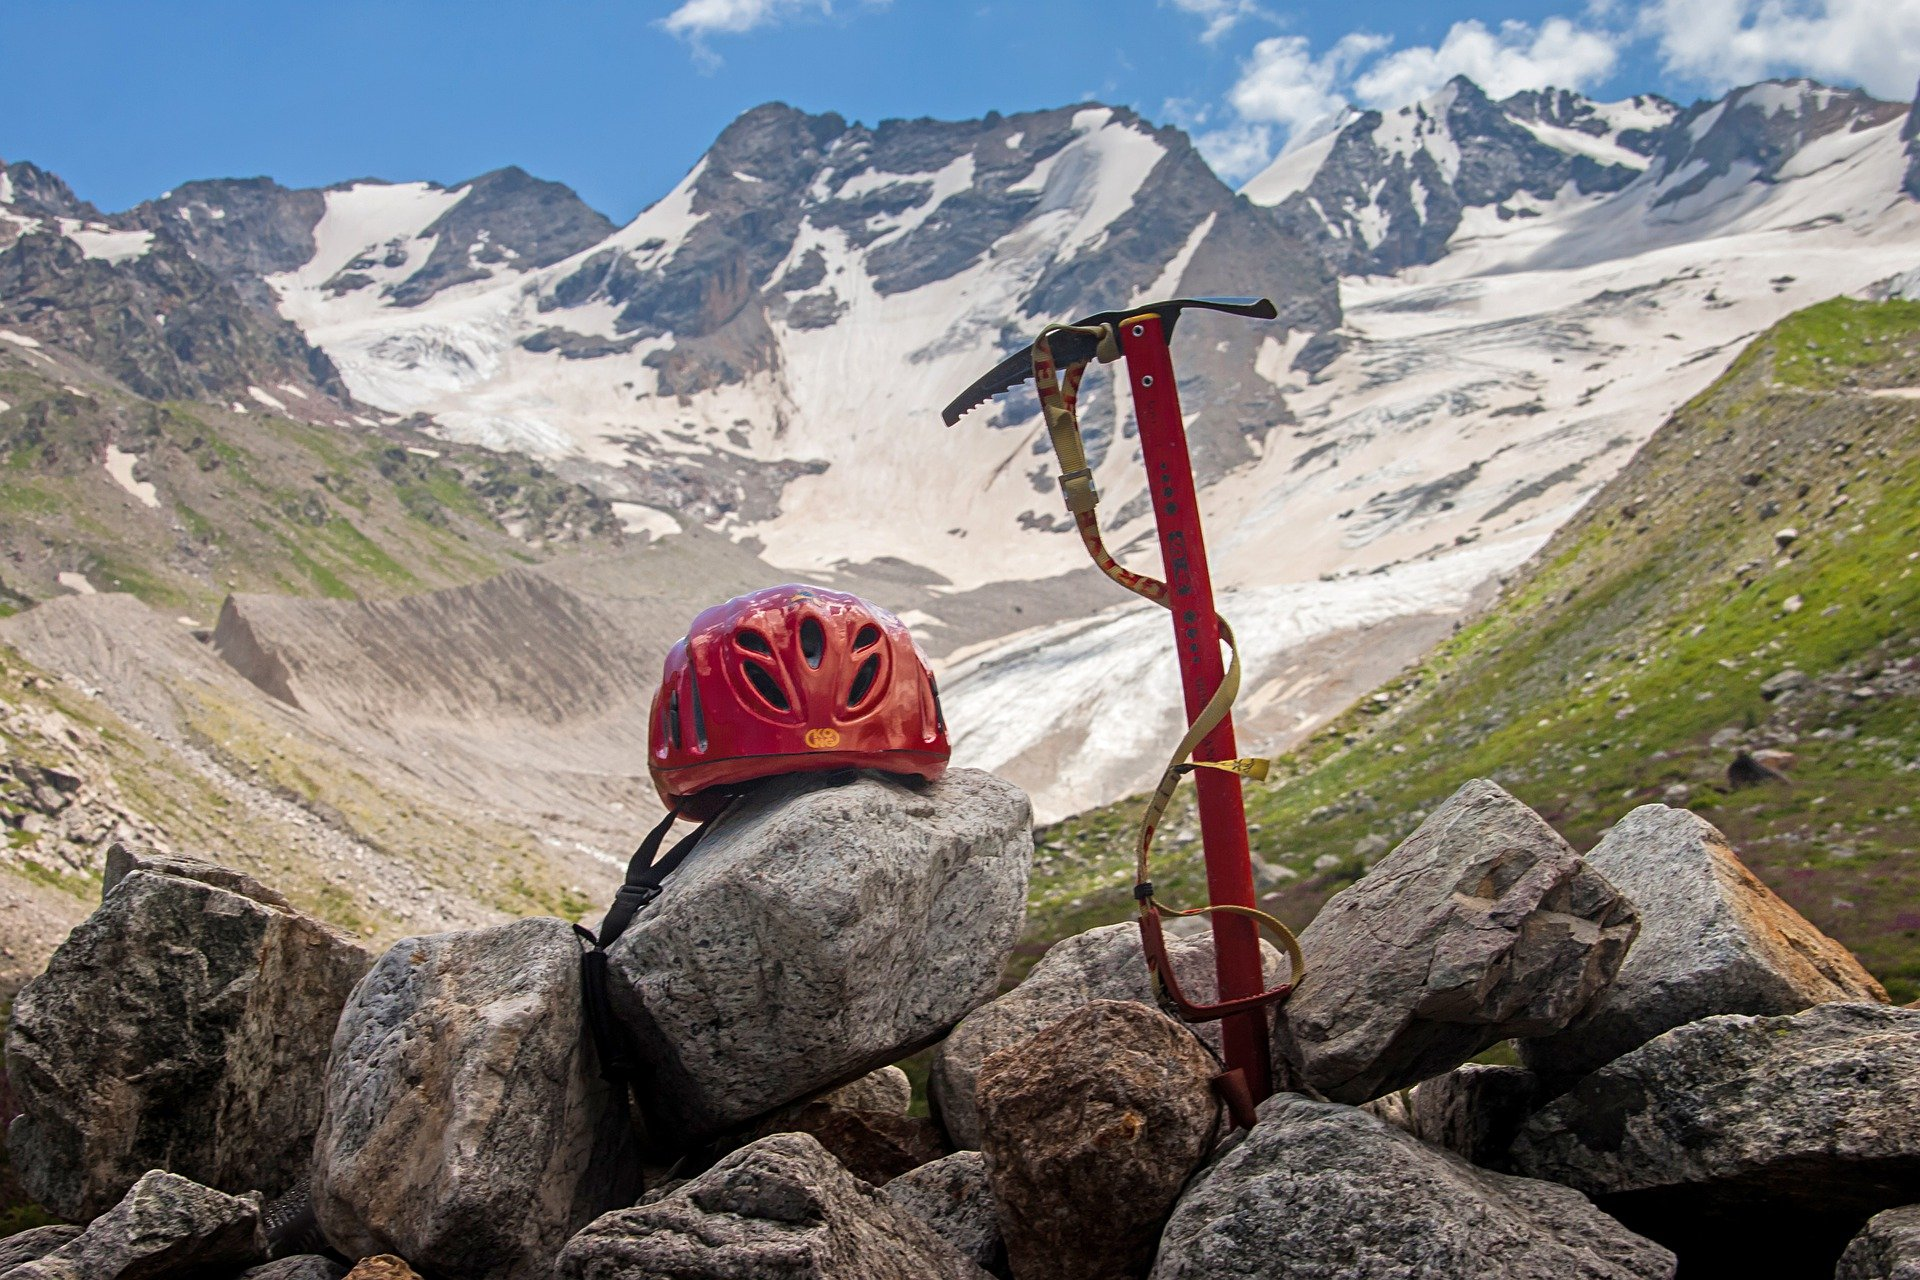 An ice pick and a helmet placed on the rocks.   Source: Pixabay.